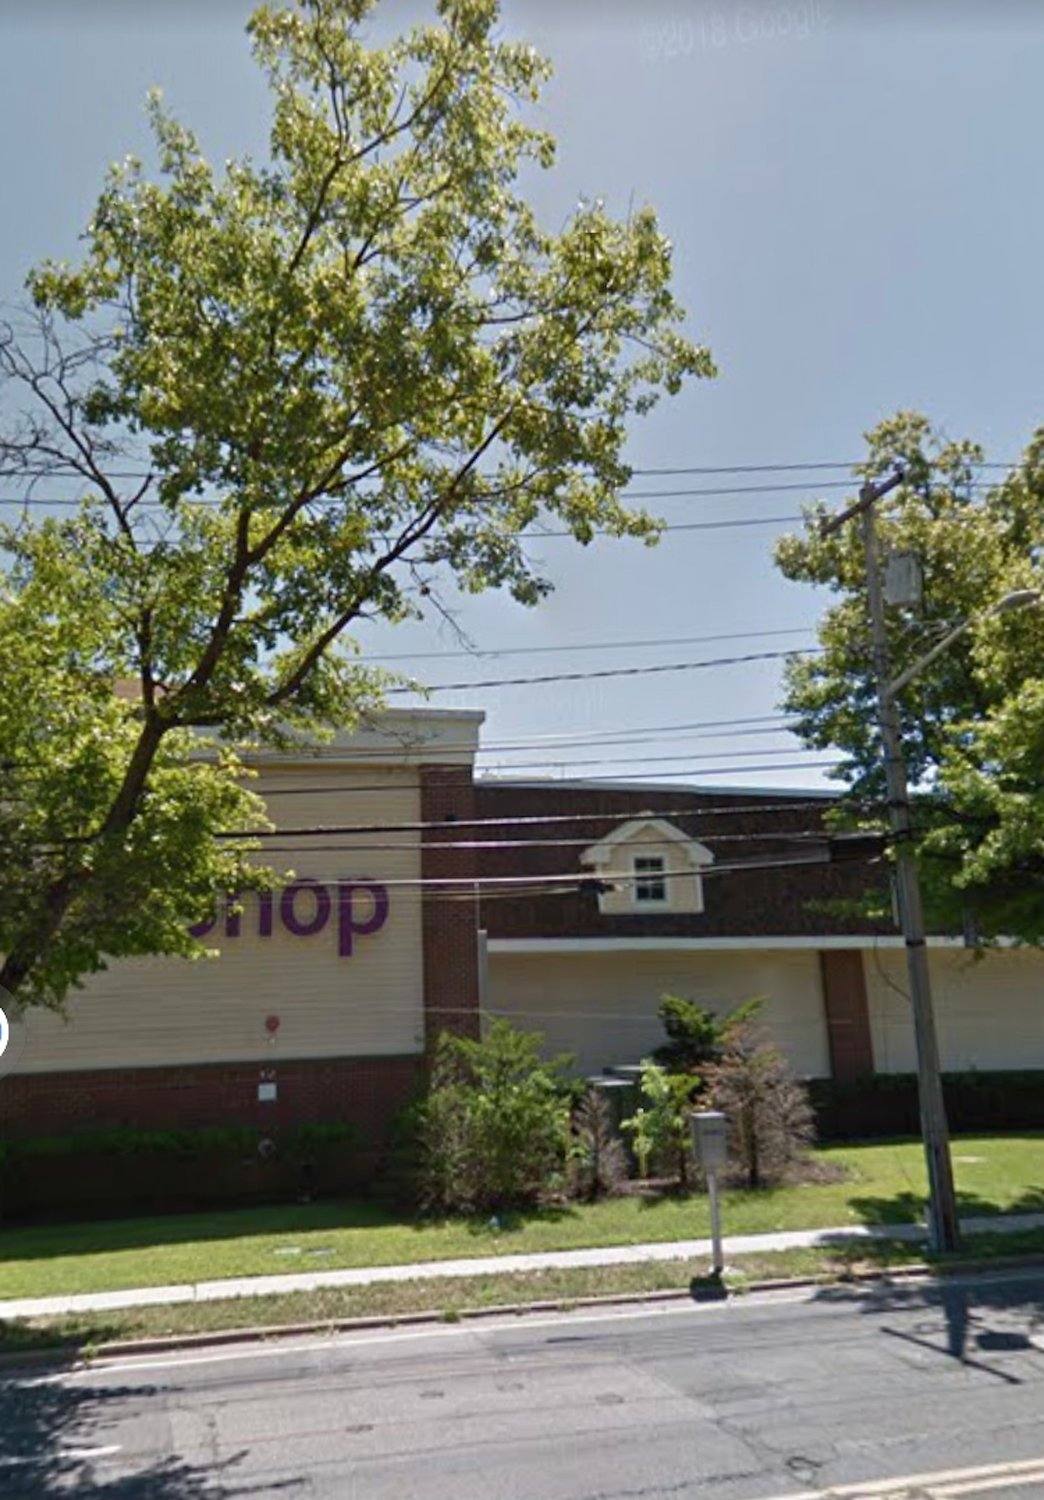 Stop & Shop, at 465 Atlantic Ave. in Oceanside, is offering online and pickup ordering via its website and mobile app.